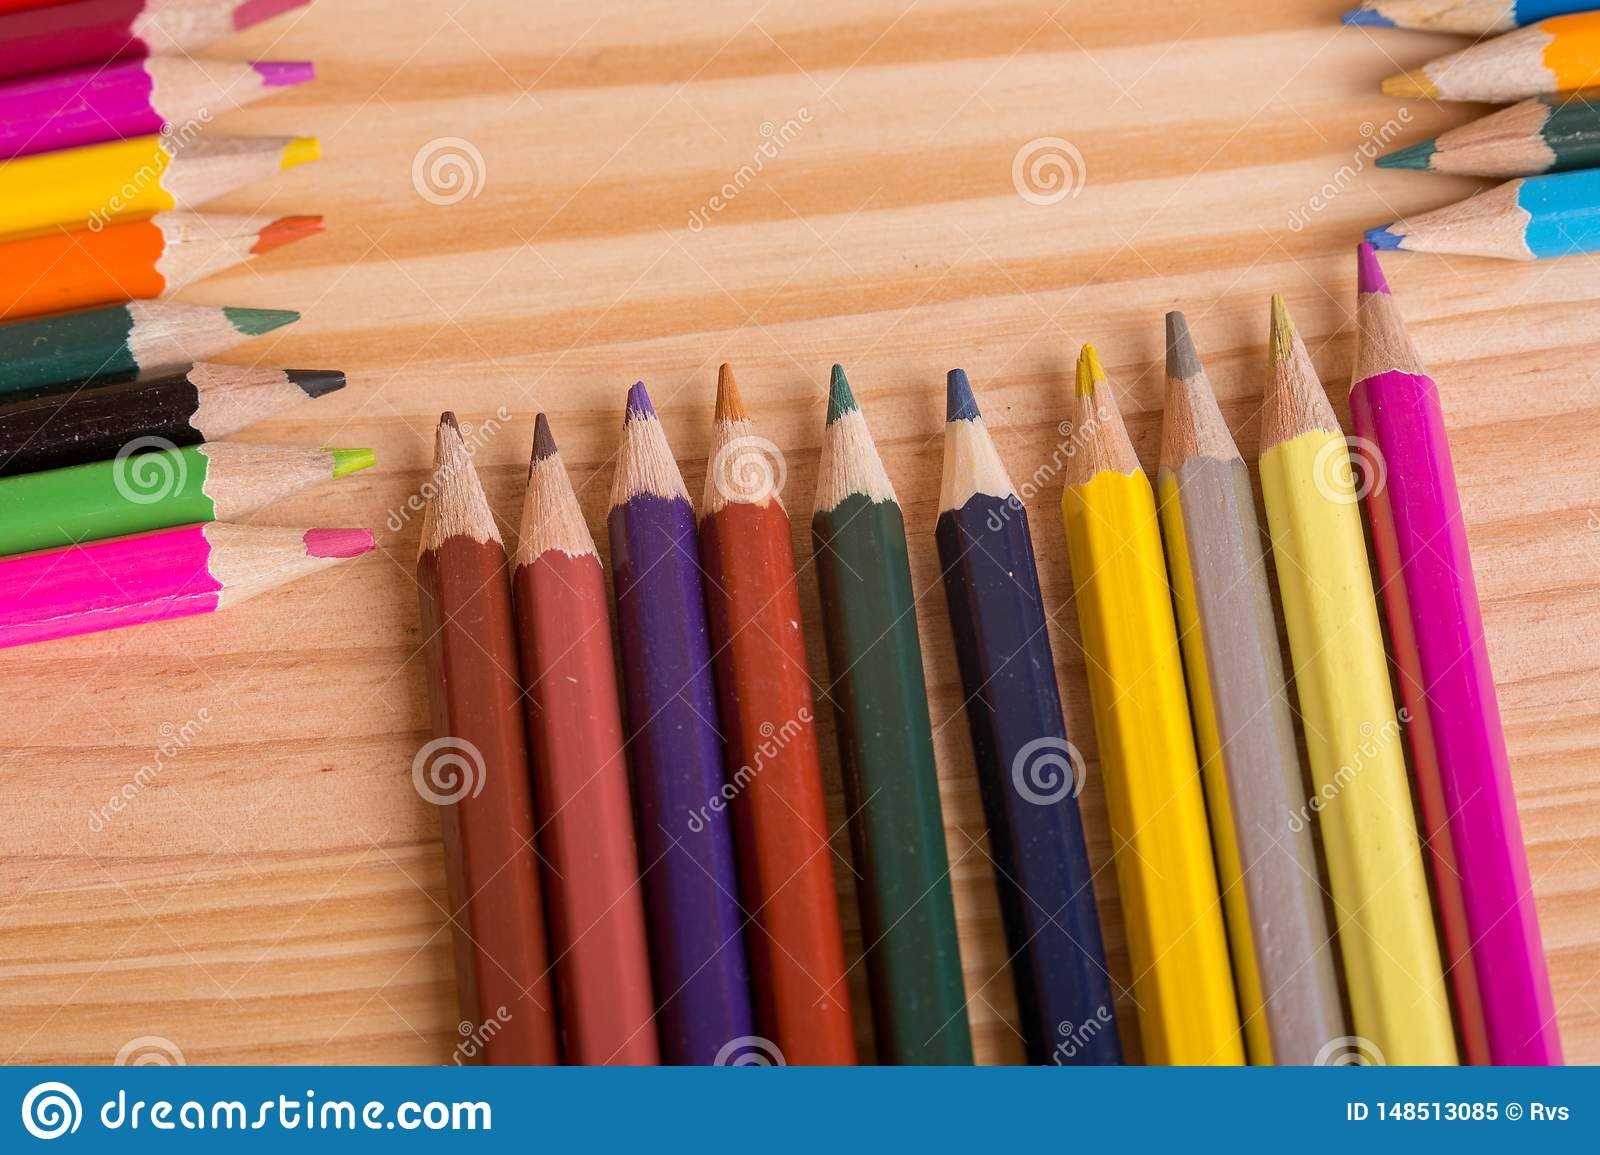 Colorful pencils